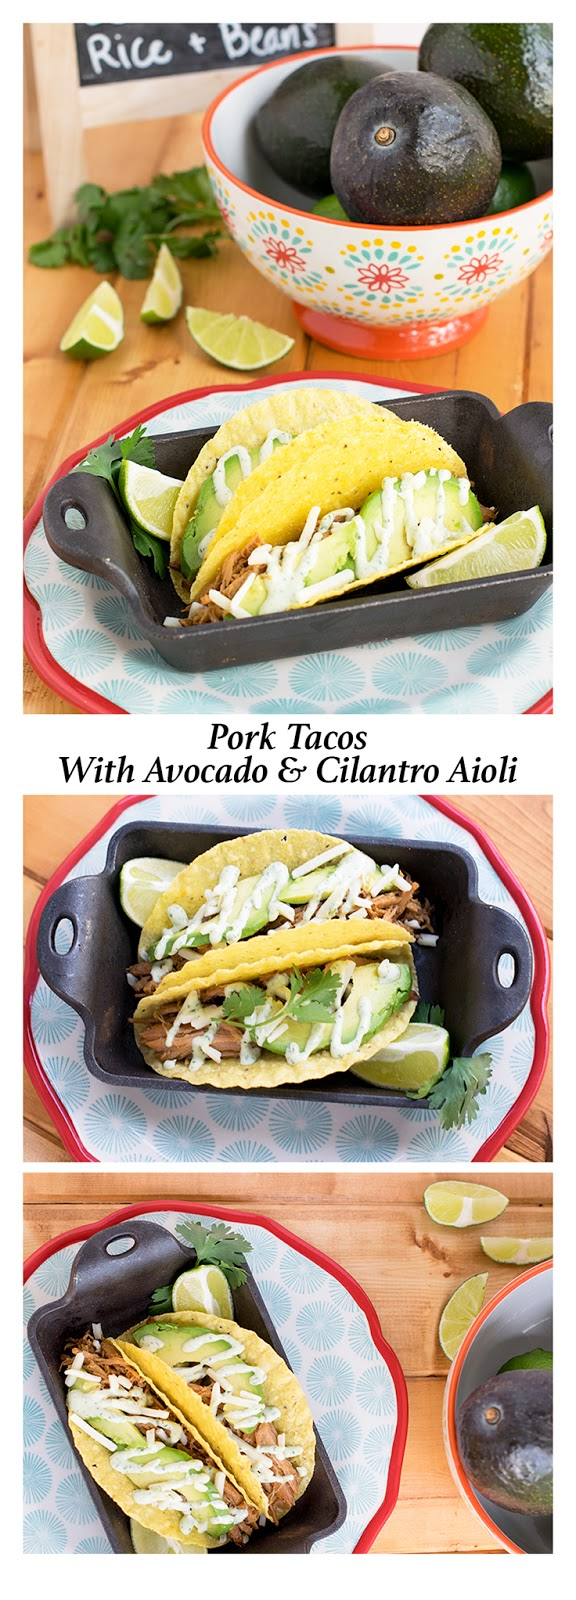 Pork Tacos with Avocade and Cilantro Aioli